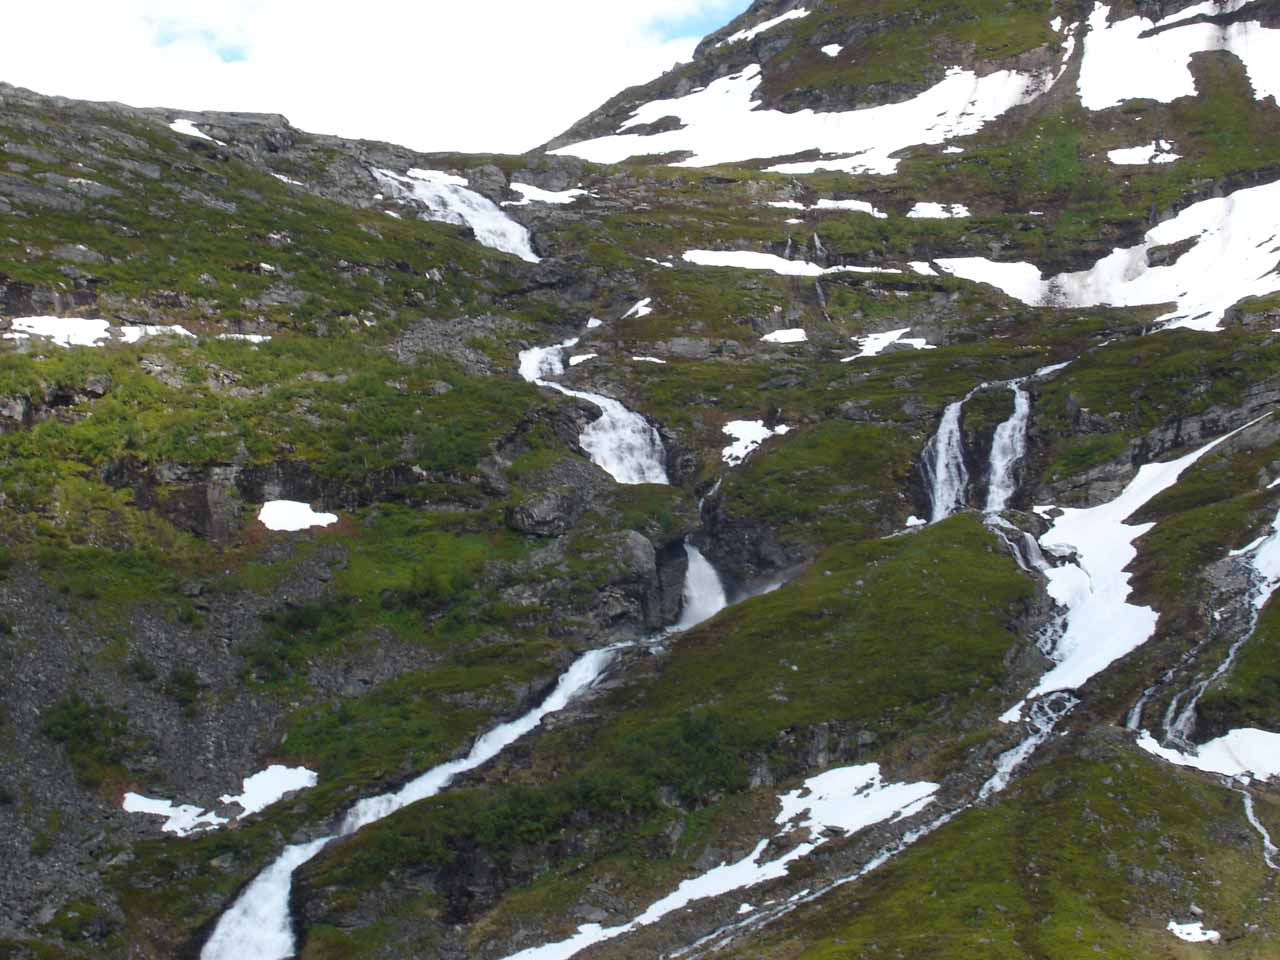 A closer afternoon view of the upper tiers of Kvanndalsfossen from the Road 63